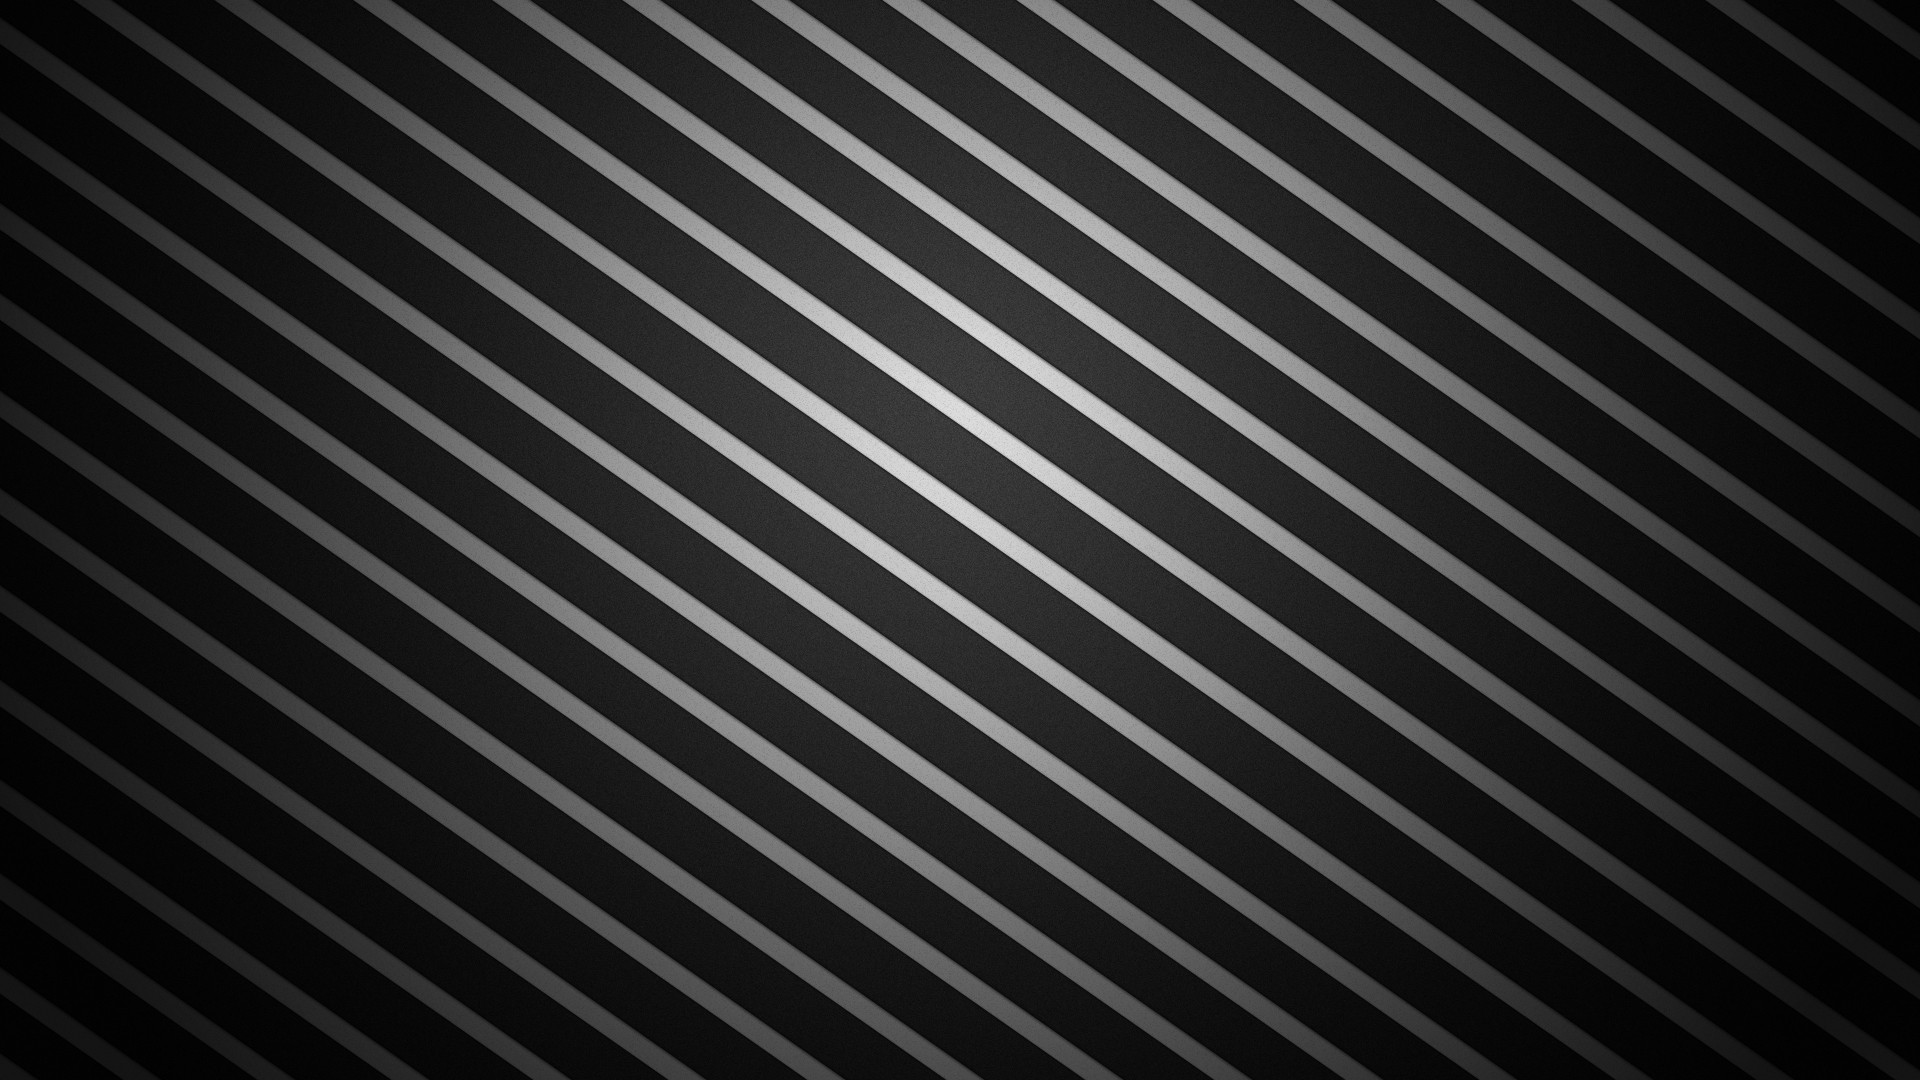 Download Abstract Black White Line Wallpaper | Full HD Wallpapers